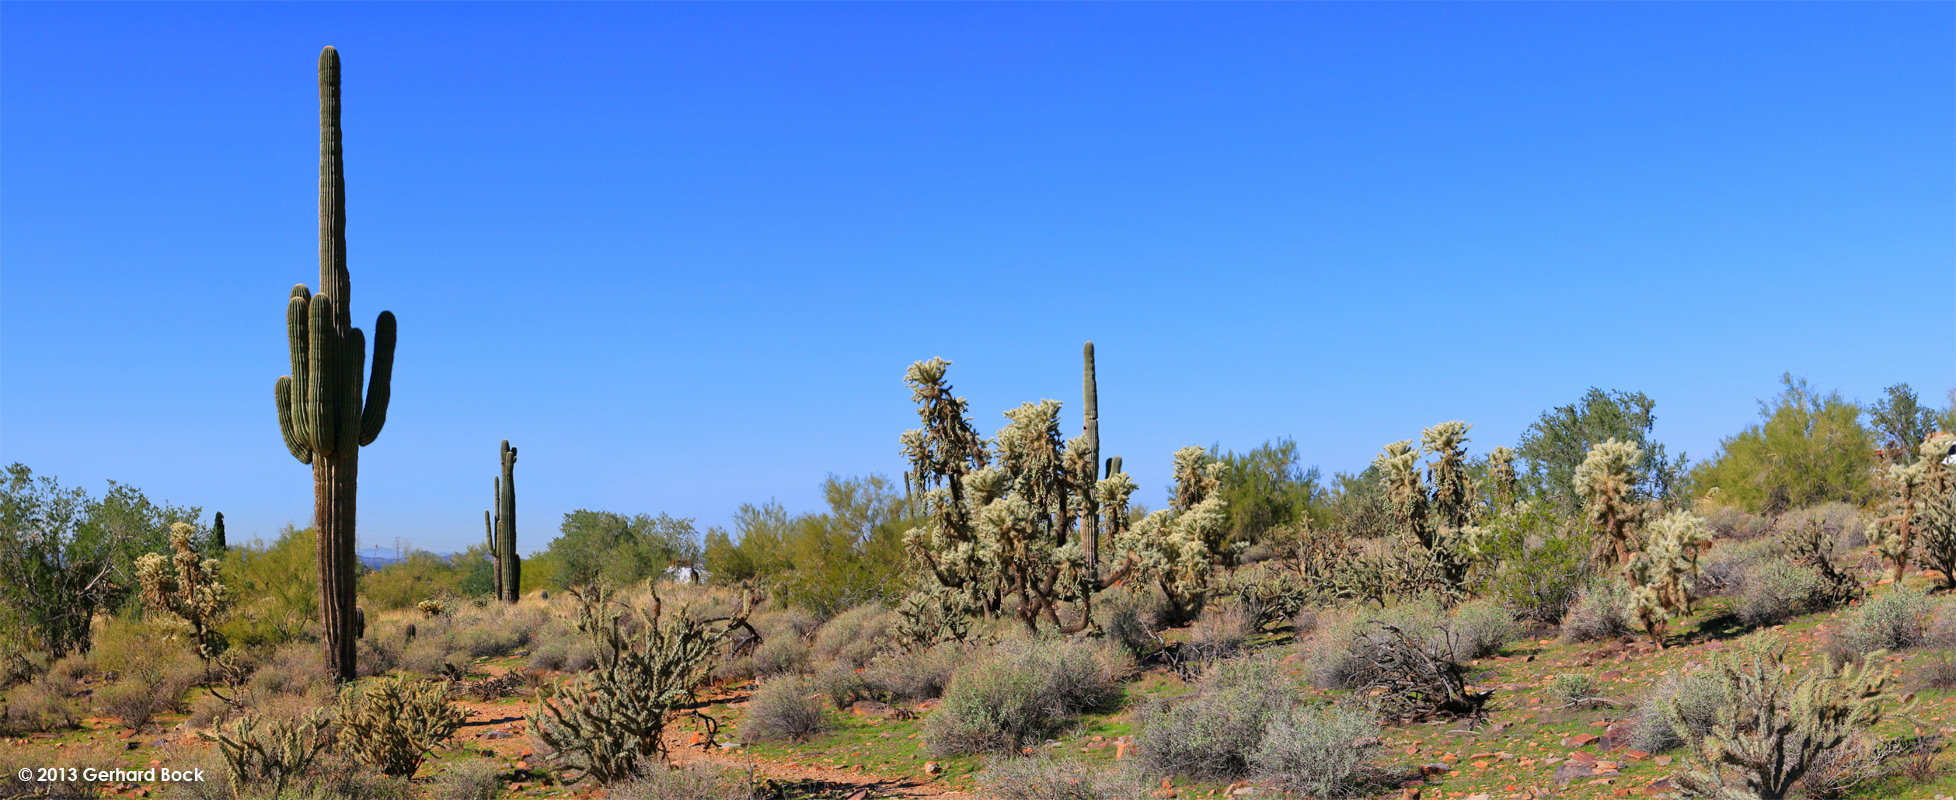 Succulents and More: Arizona day 5—Taliesin West ...